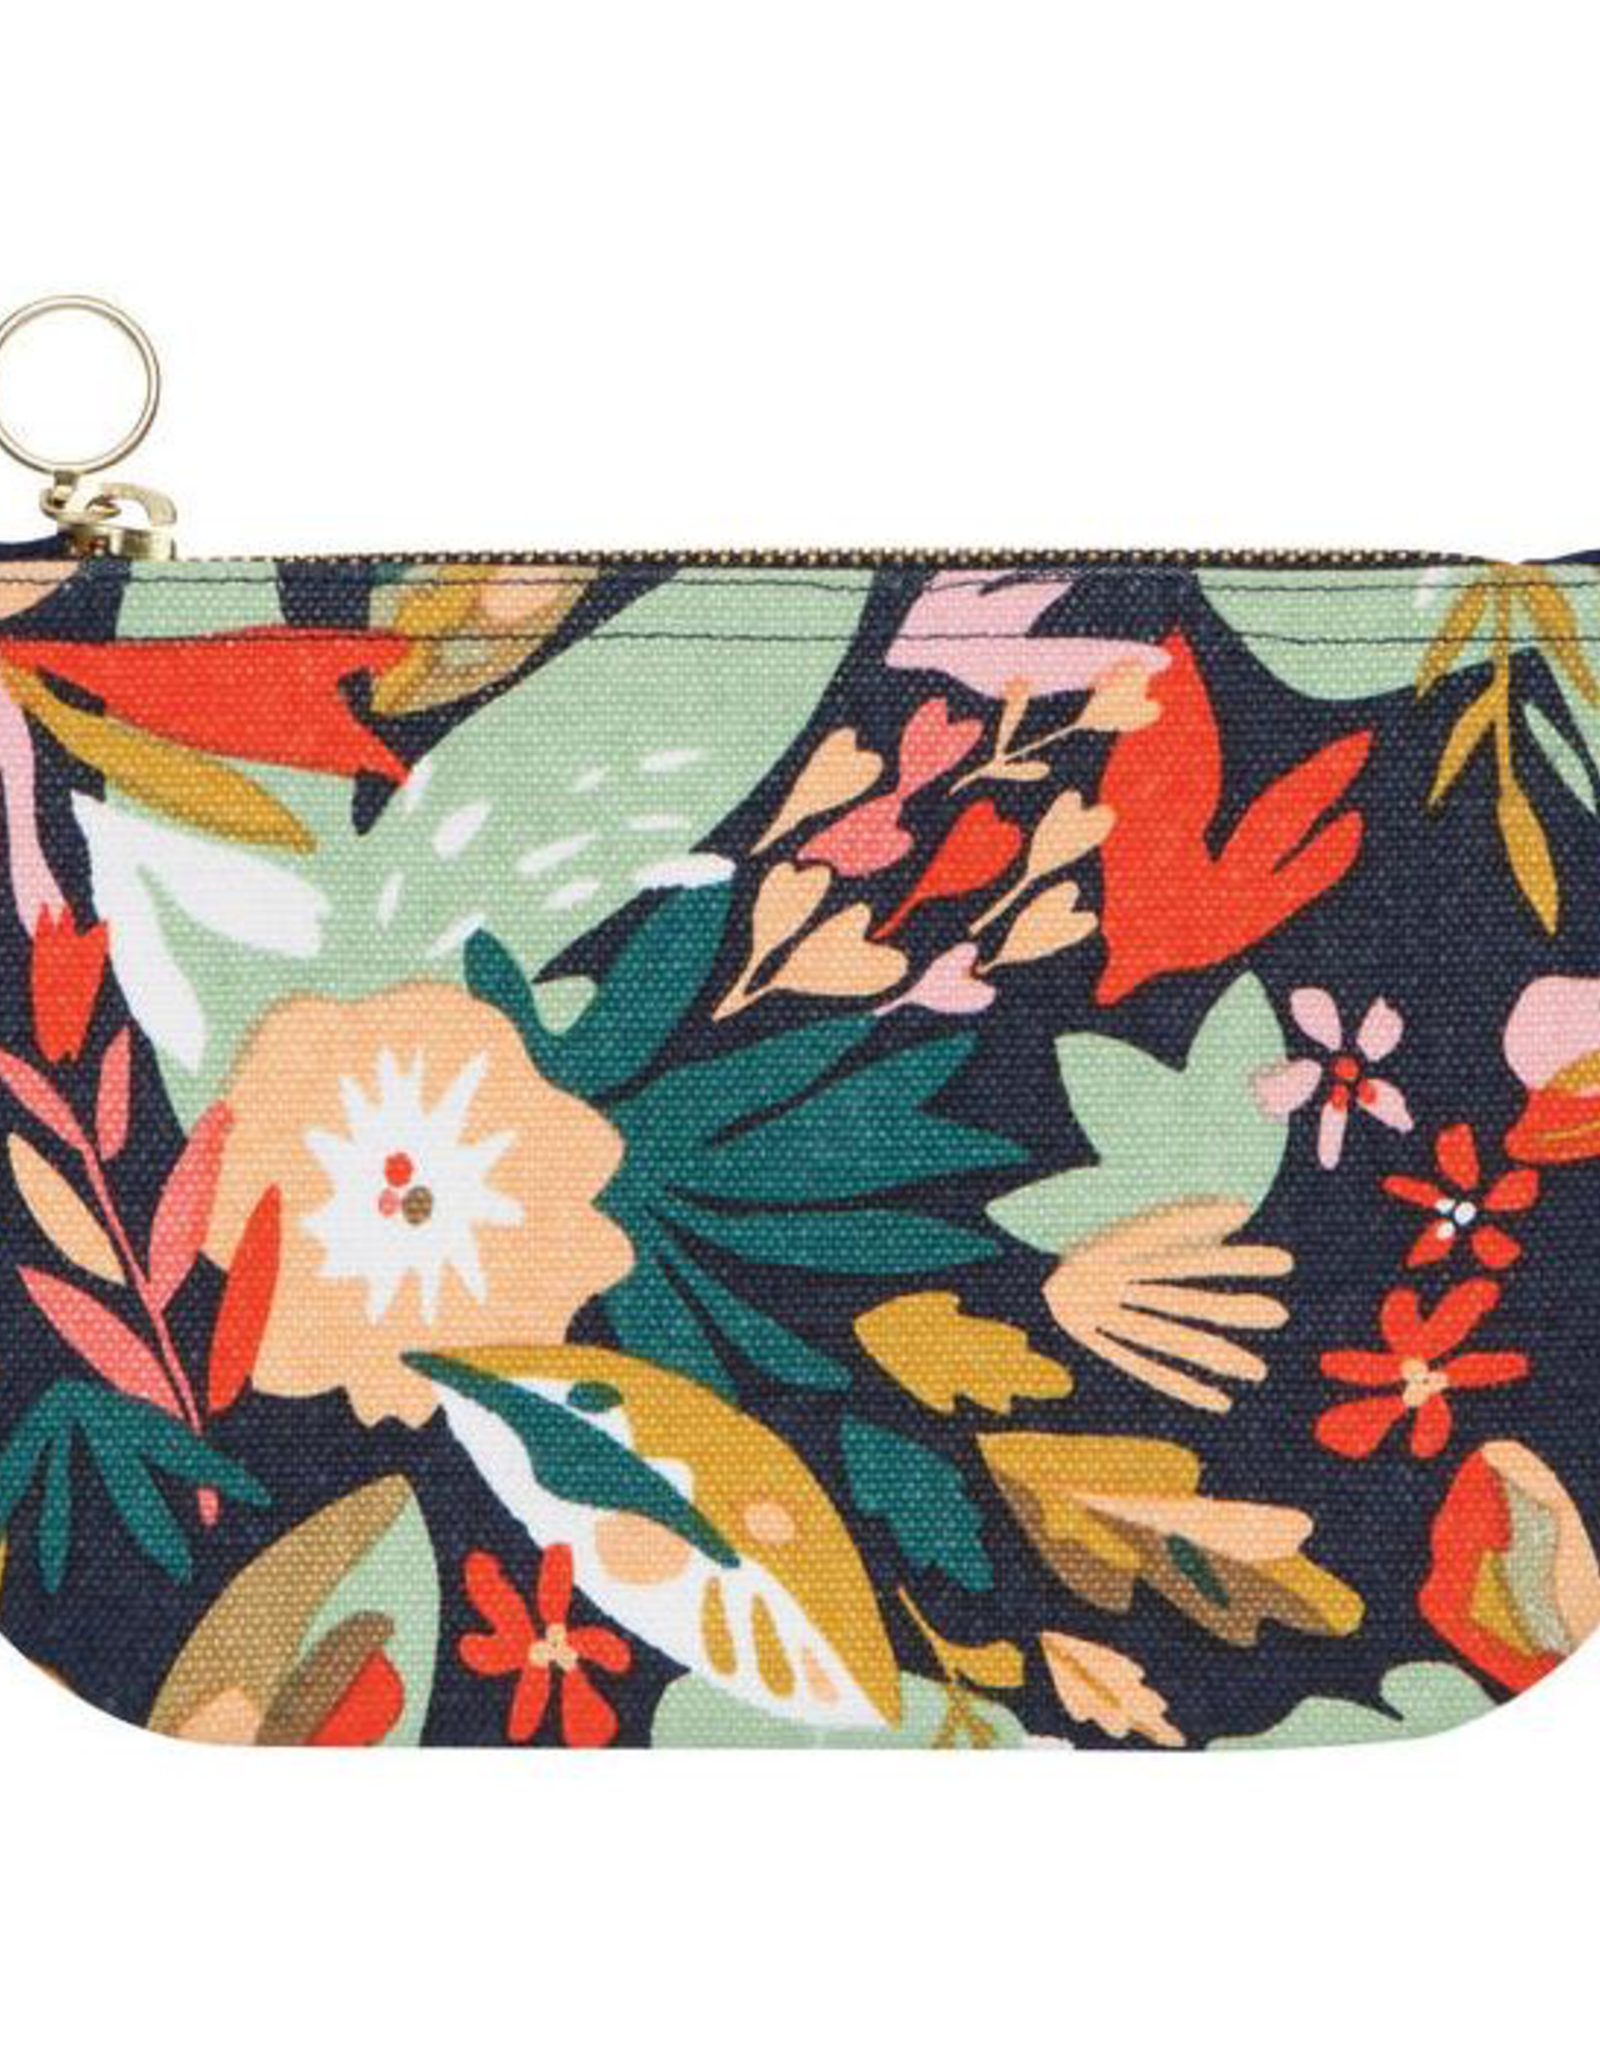 Zip Pouch Small - Superbloom